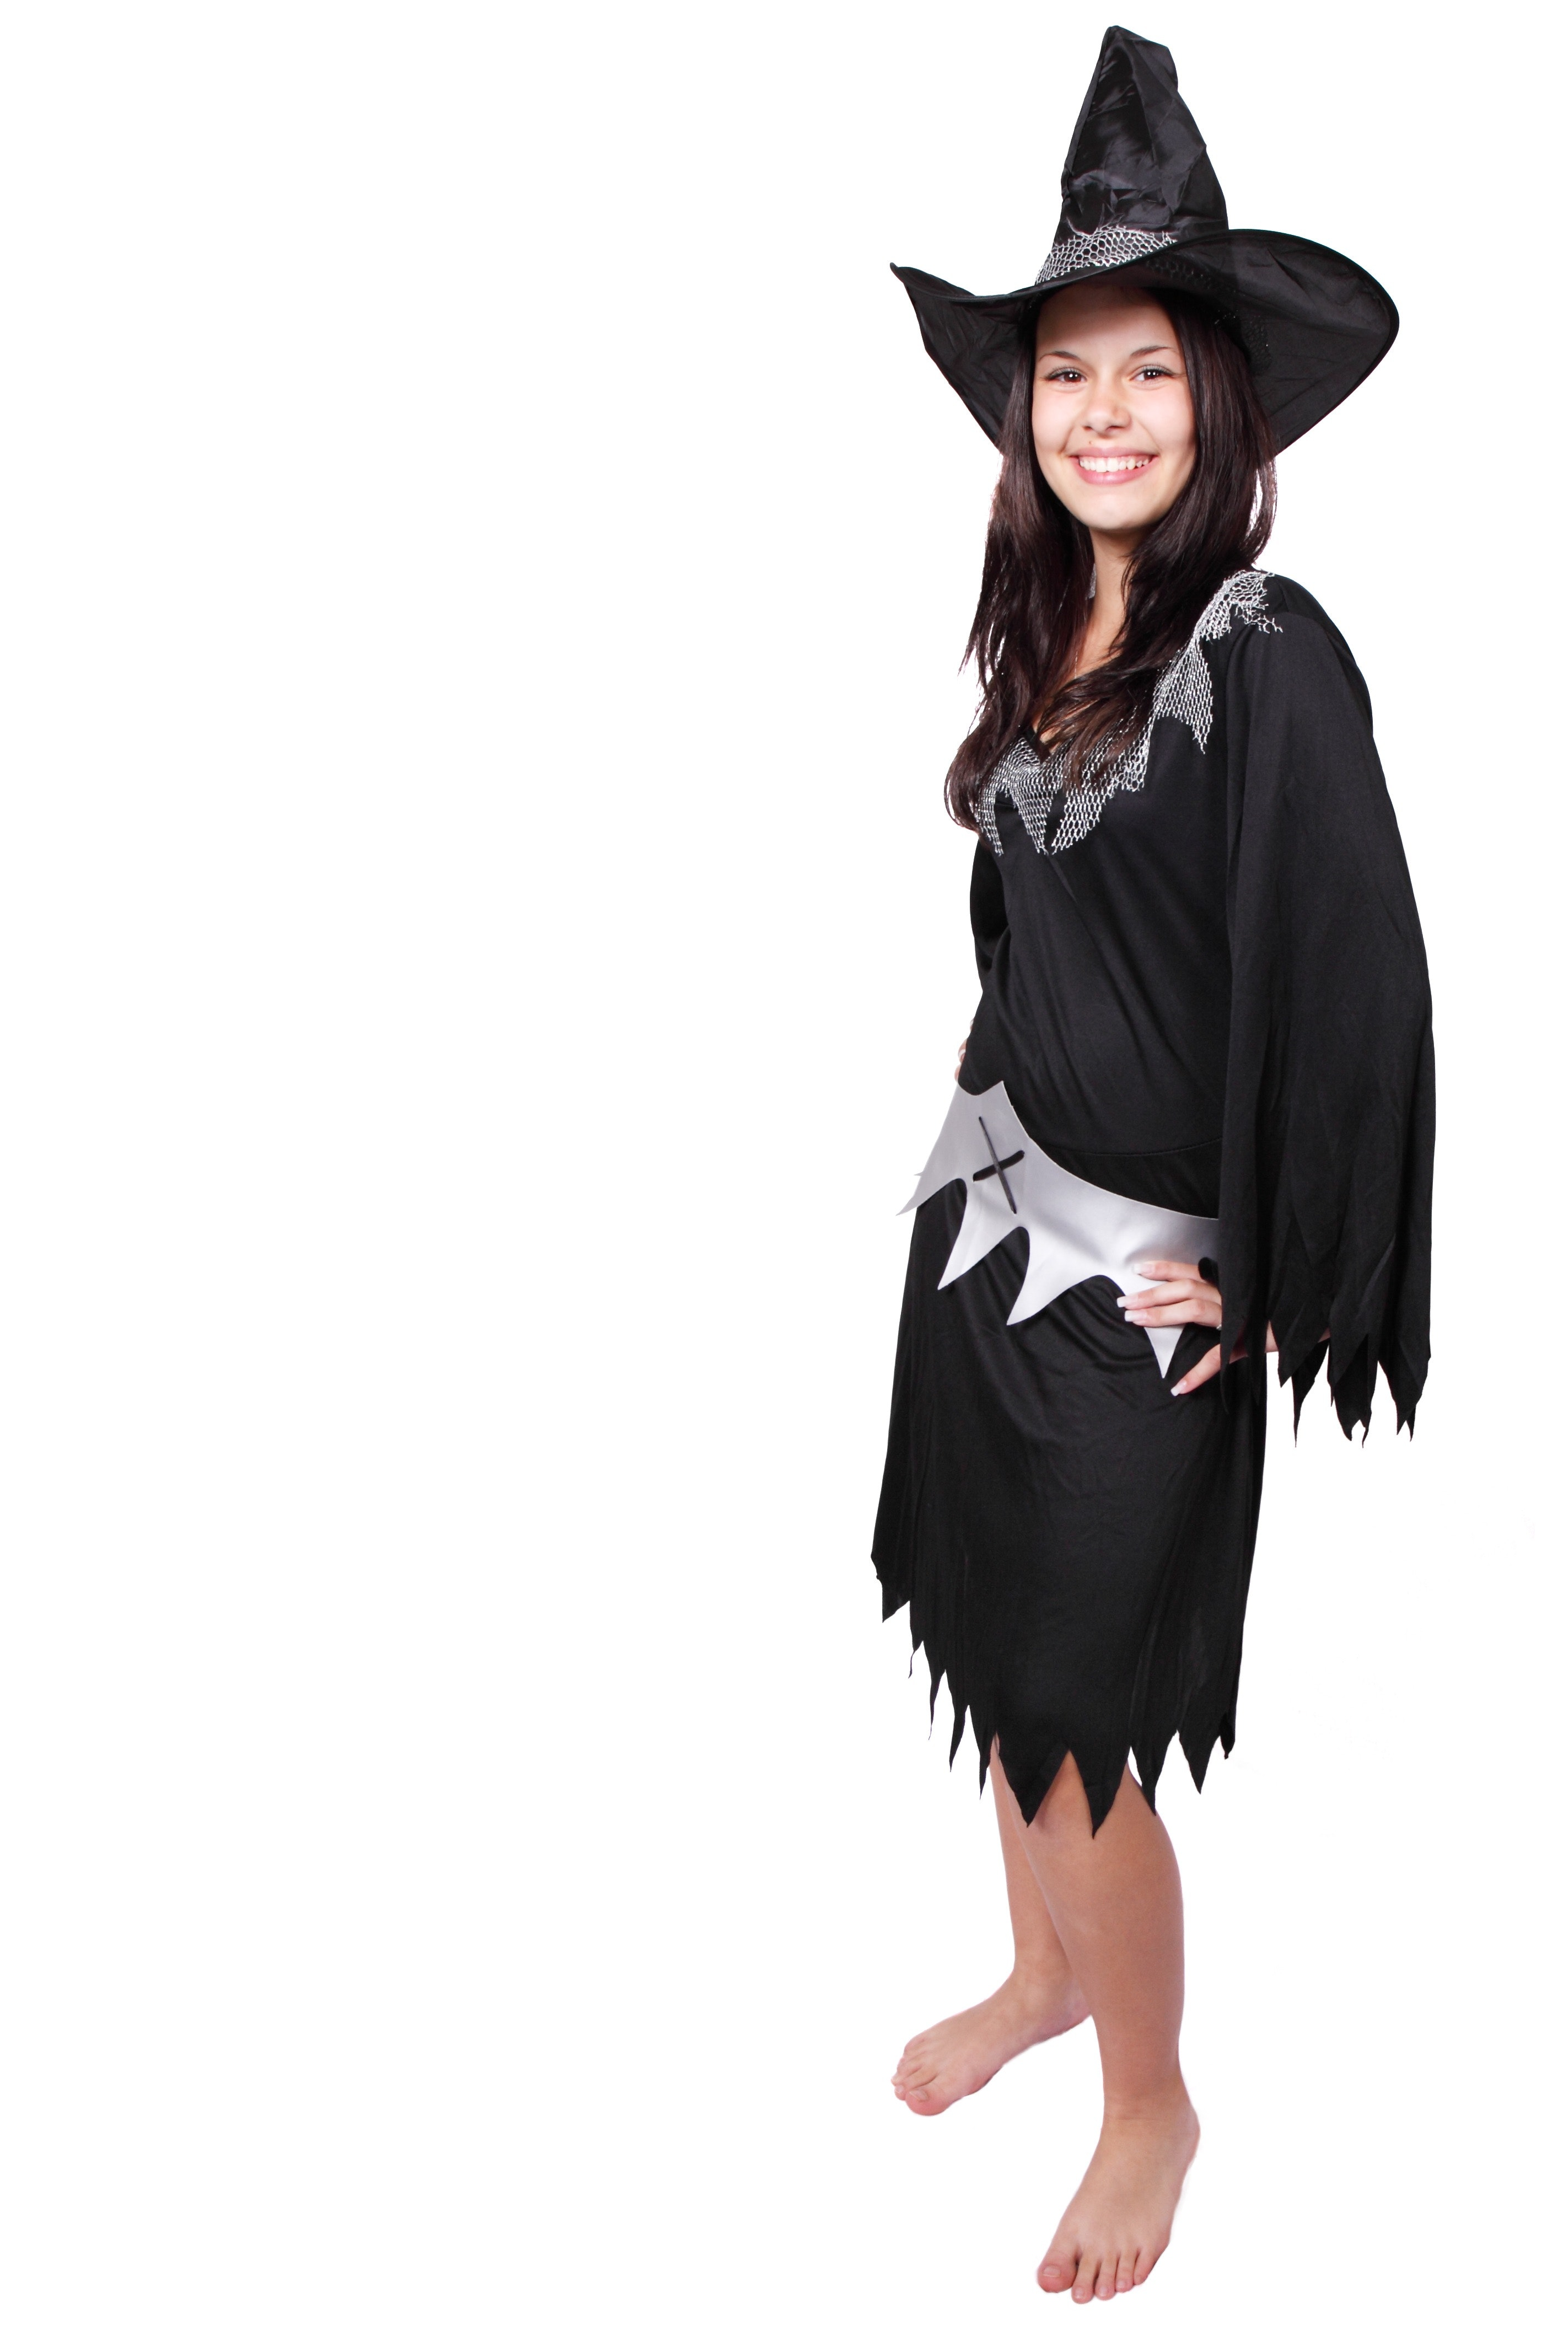 Women in witch costume photo